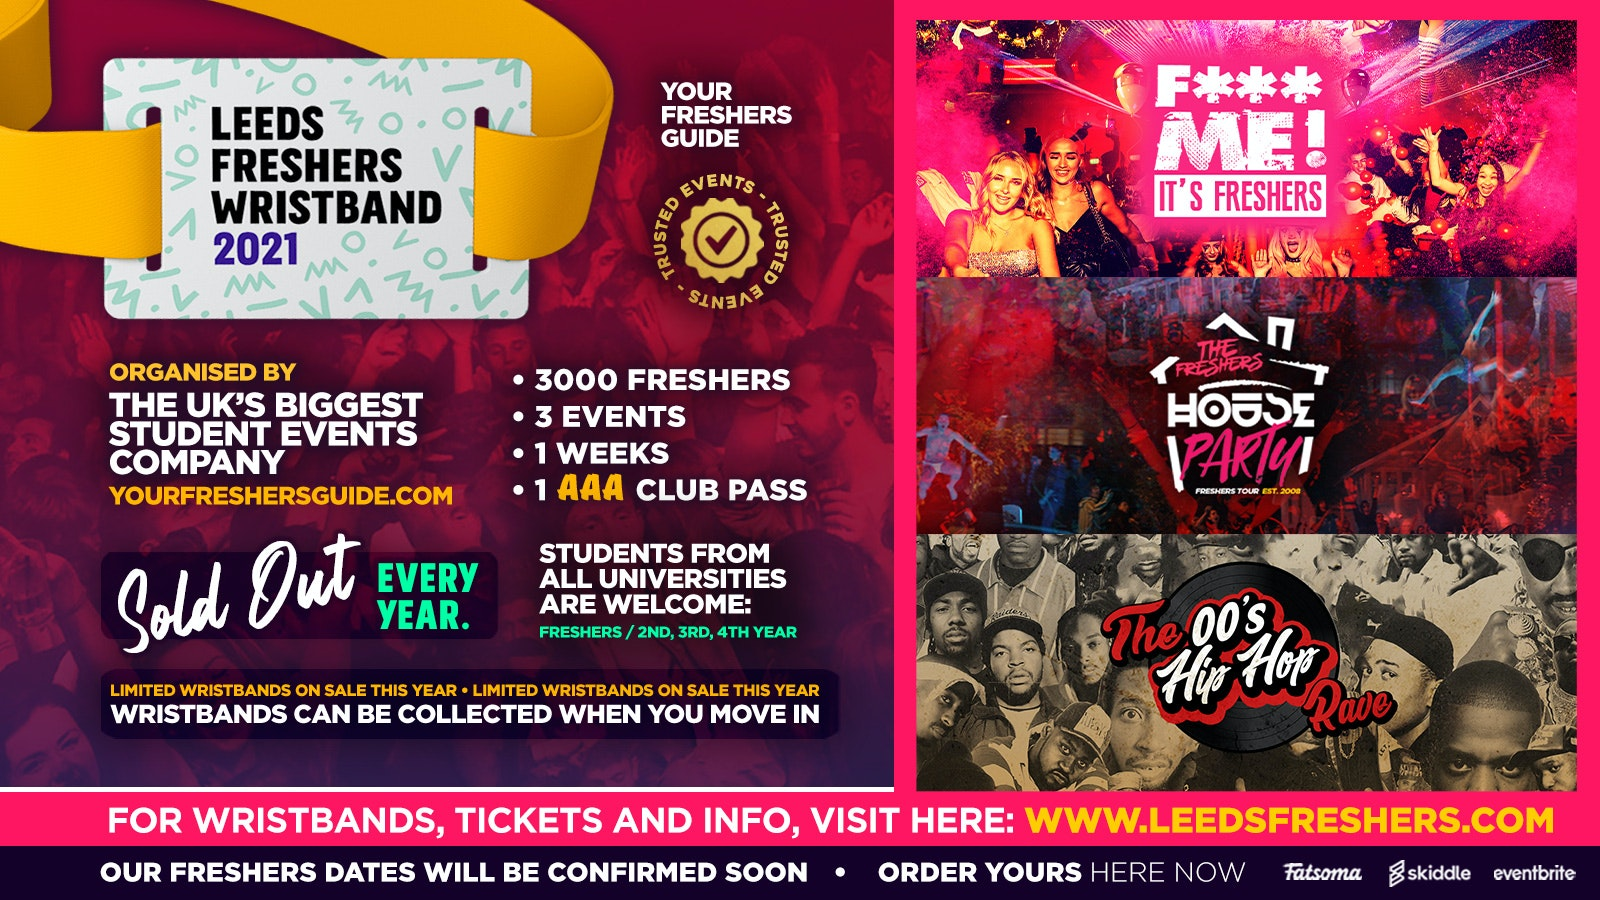 Leeds Freshers Wristband 2021 – The Official Freshers Pass | Includes the biggest events in Leeds